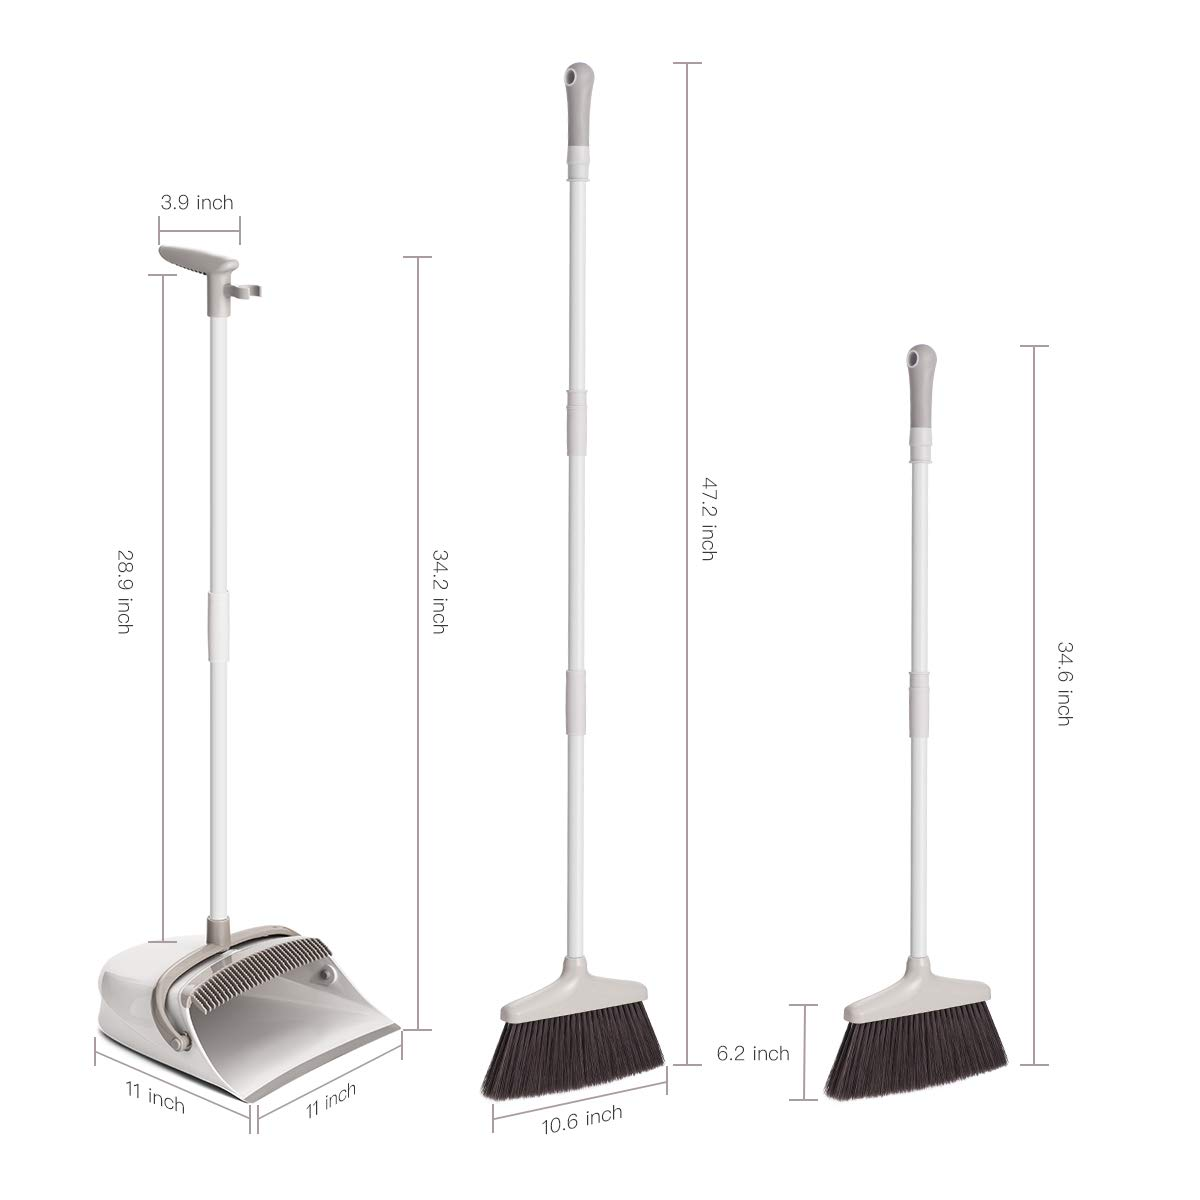 Broom and Dustpan Set, CQT Dust Pan and Broom with Long Handle for Home Kitchen Industry Lobby Floor Sweeping Upright Stand Up Dustpan Cleans Broom Combo by CQT (Image #6)